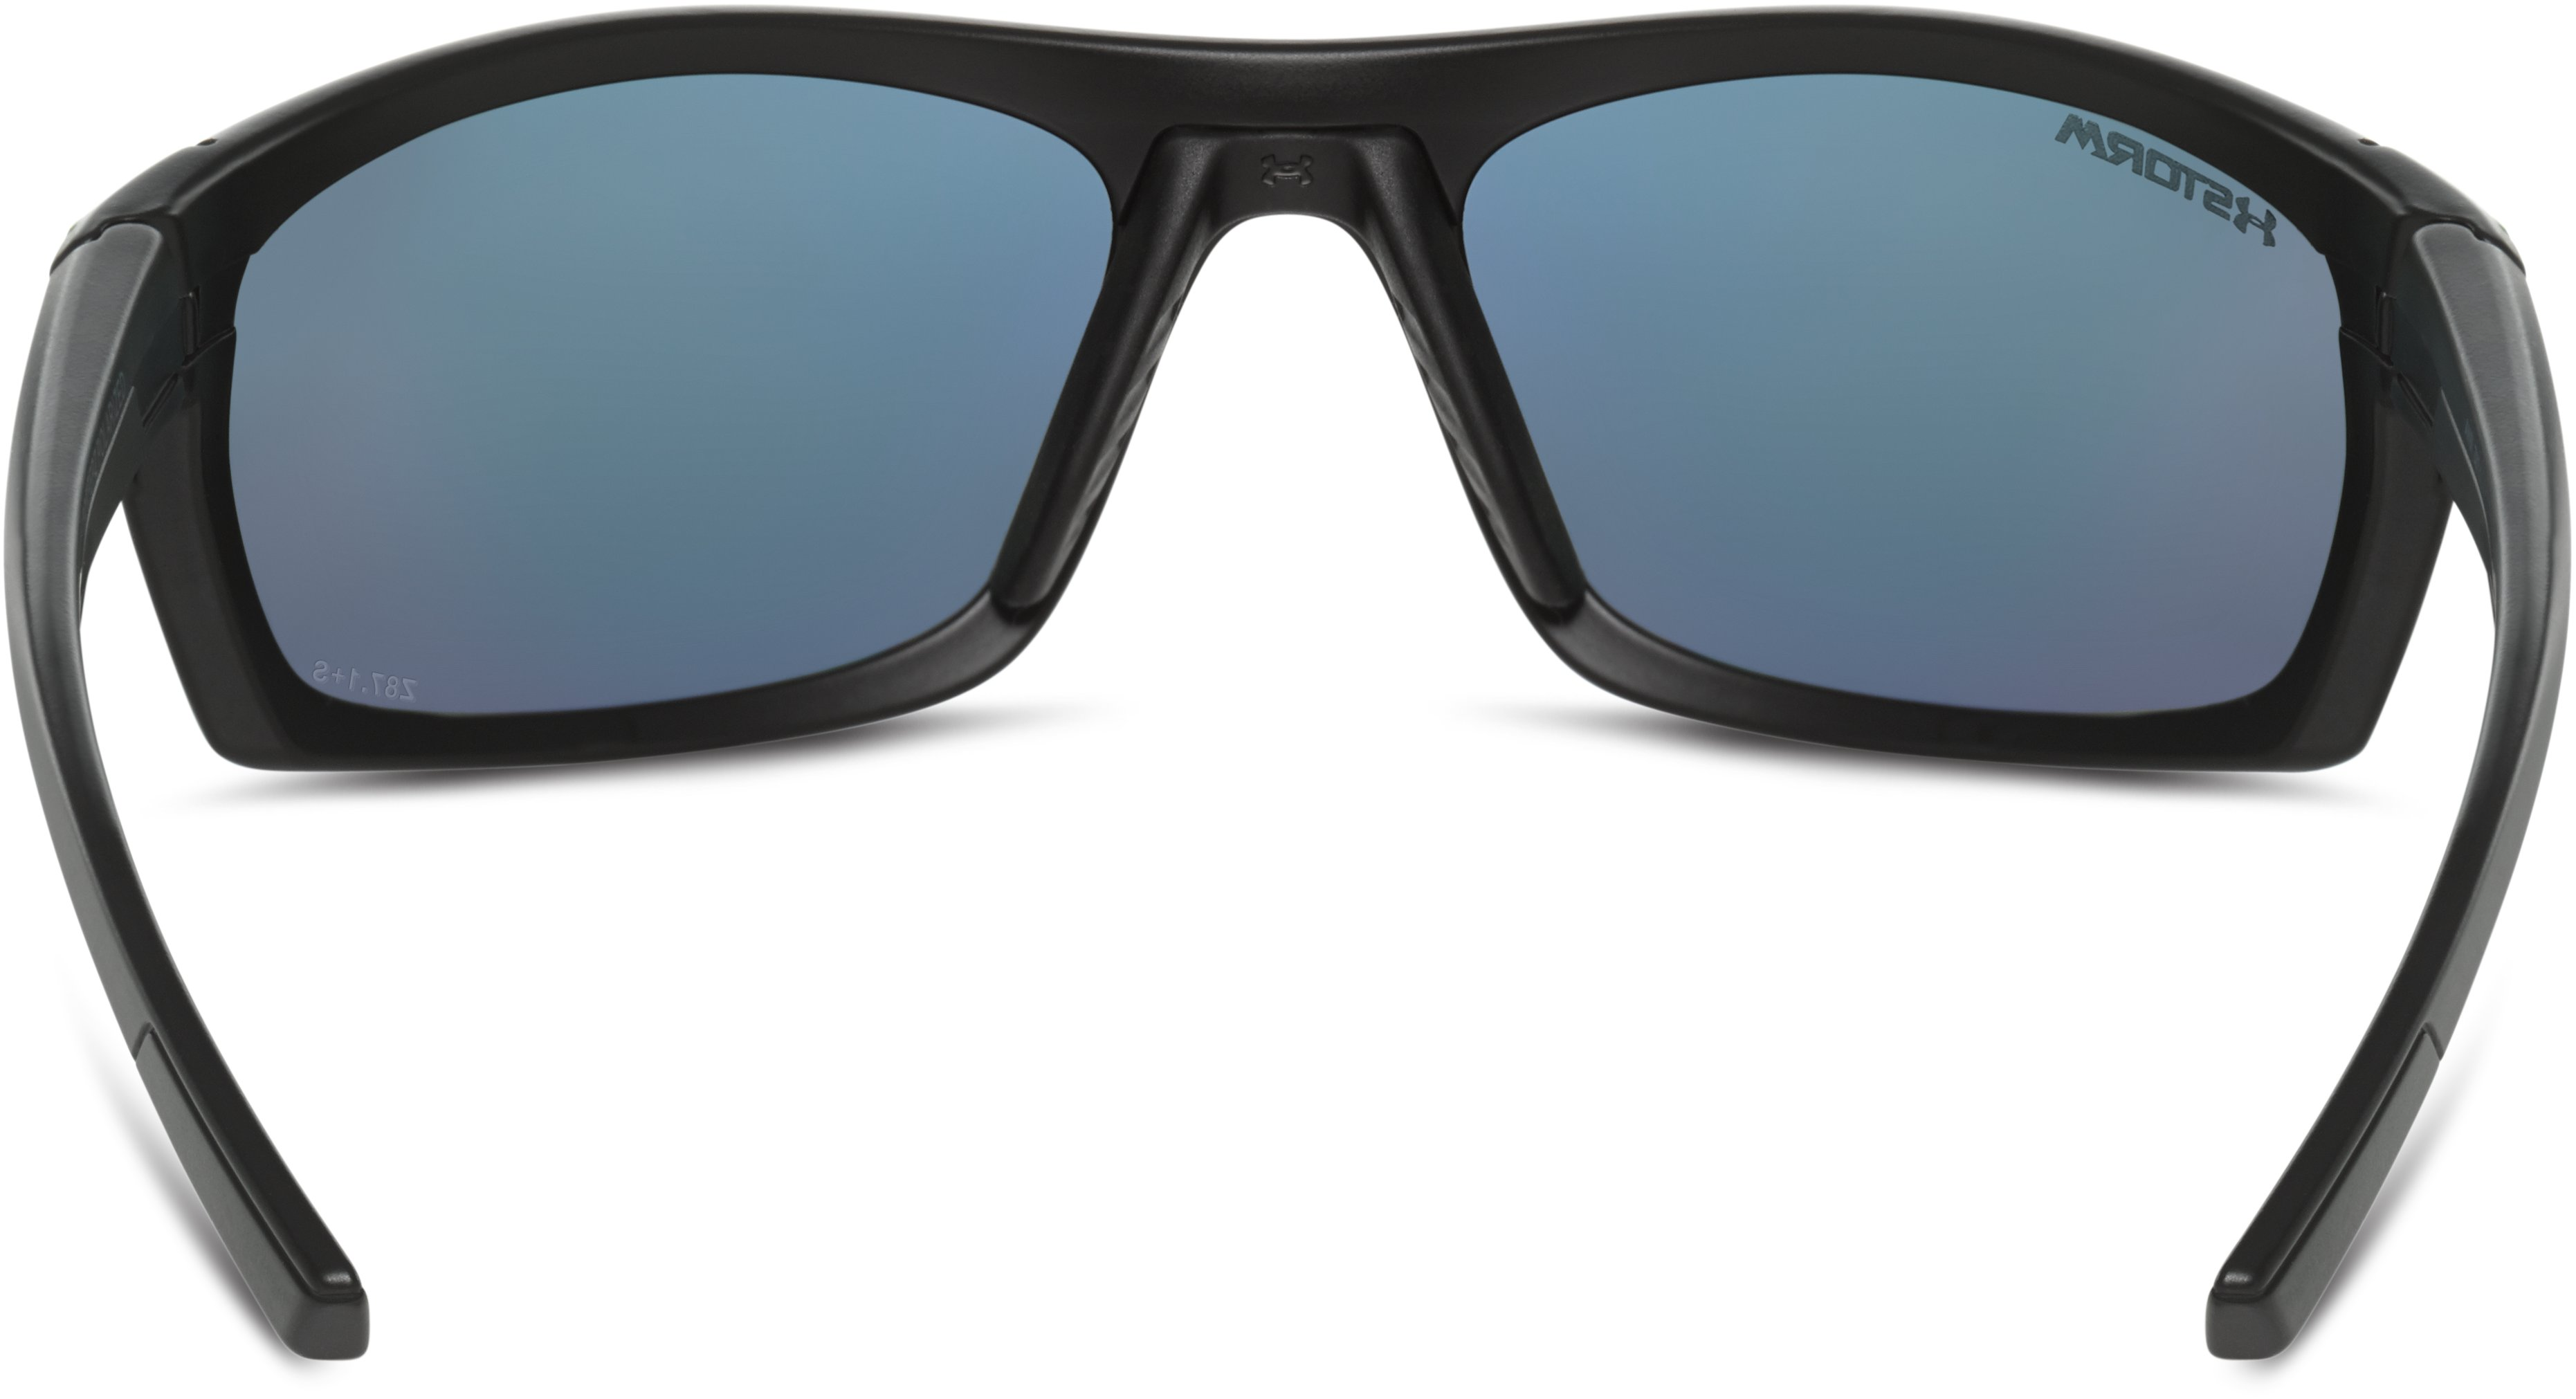 UA Keepz Storm Polarized Sunglasses, Satin Black